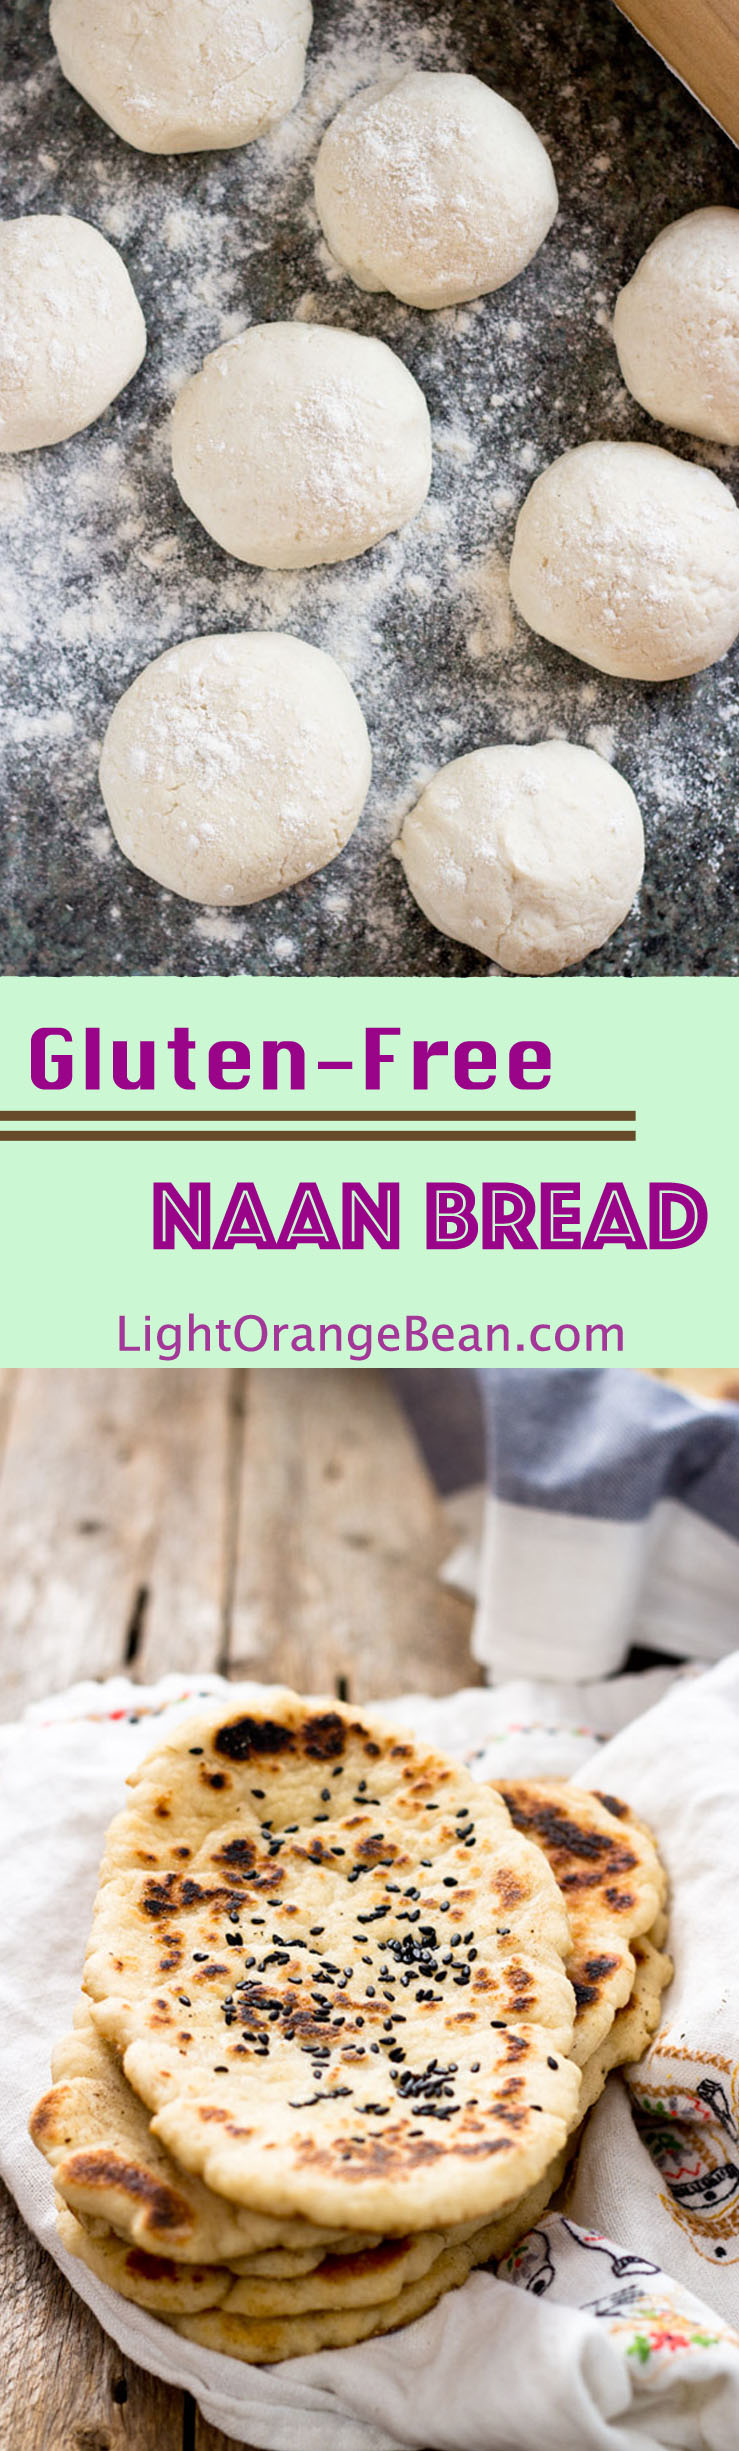 This pillowy gluten-free soft naan is the best gf flatbread I've ever had.  You can use it to scoop other foods, such as sauce or dips, like you would do in an authentic Indian restaurant. (#vegan #vegetarian #glutenfree #Indianfood #homemadenaan #naan #naanbread)